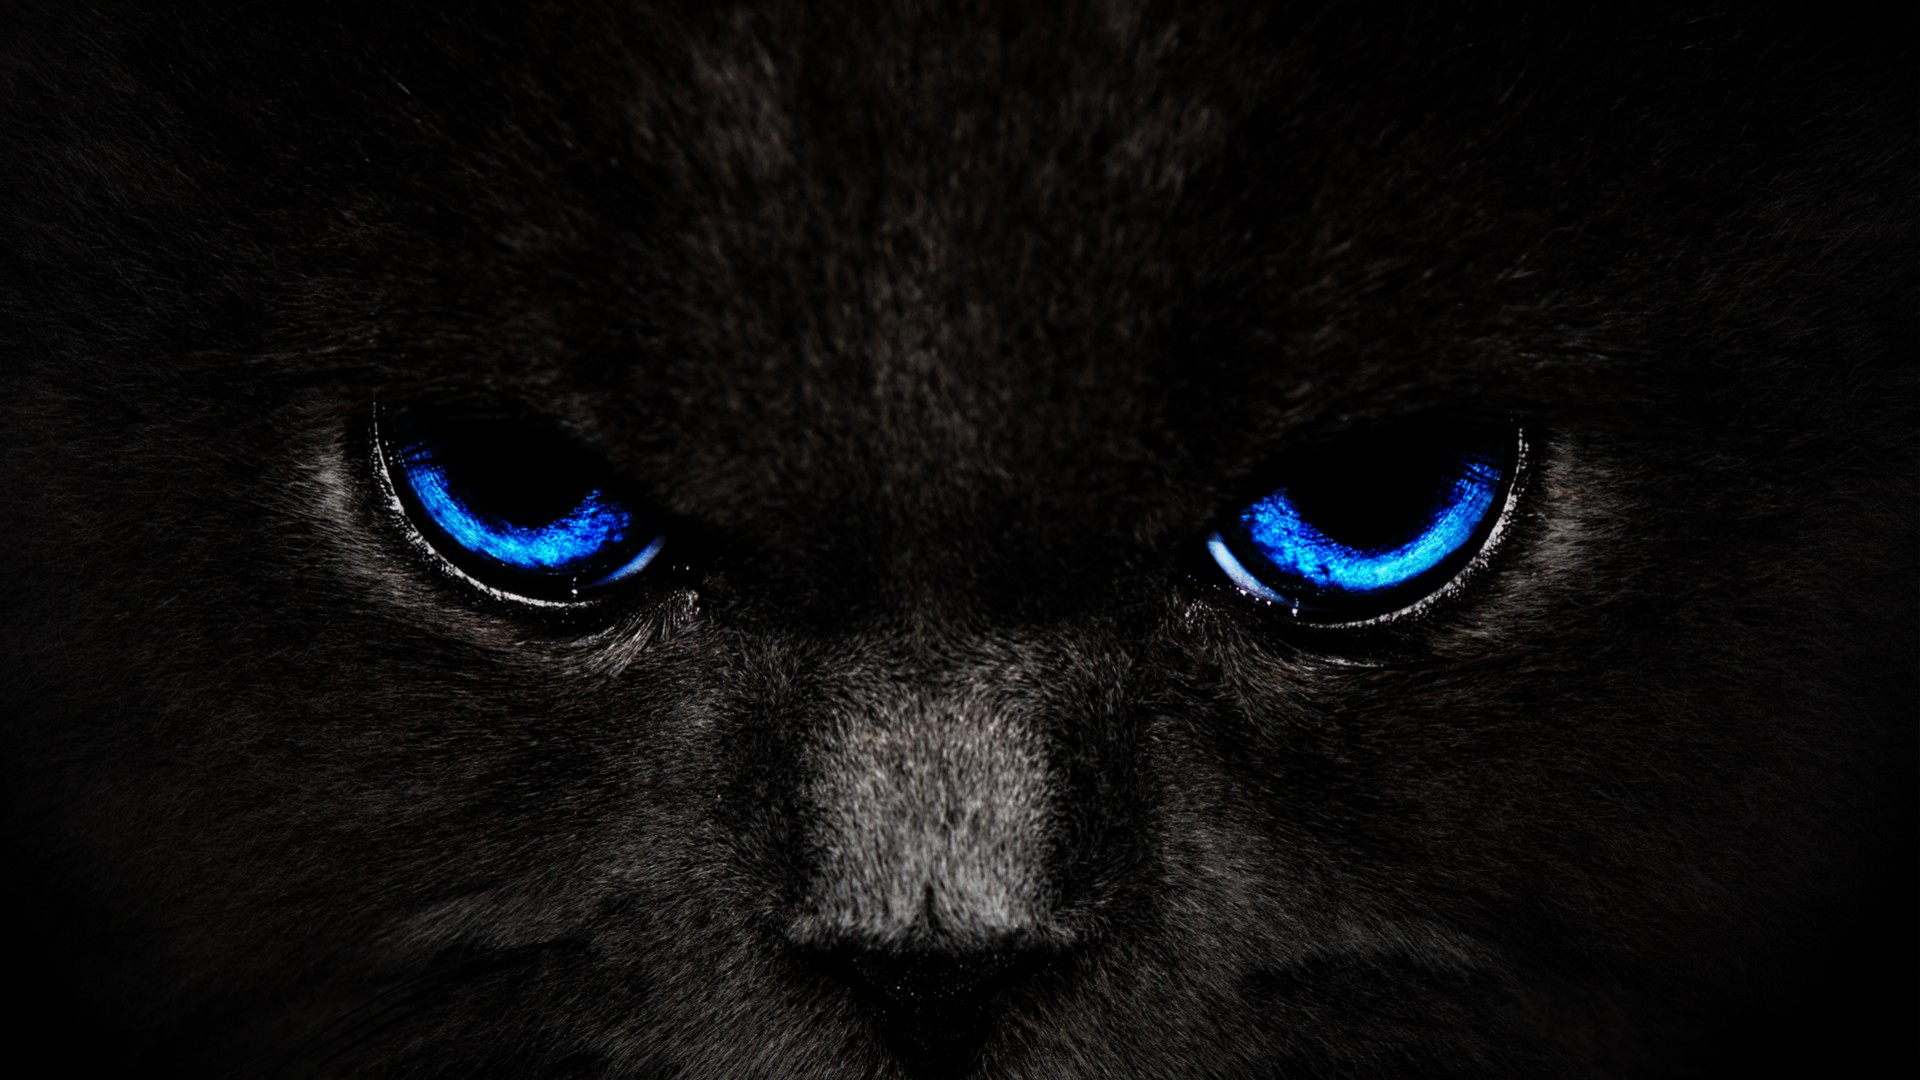 43 Black Cat Eyes Wallpaper On Wallpapersafari